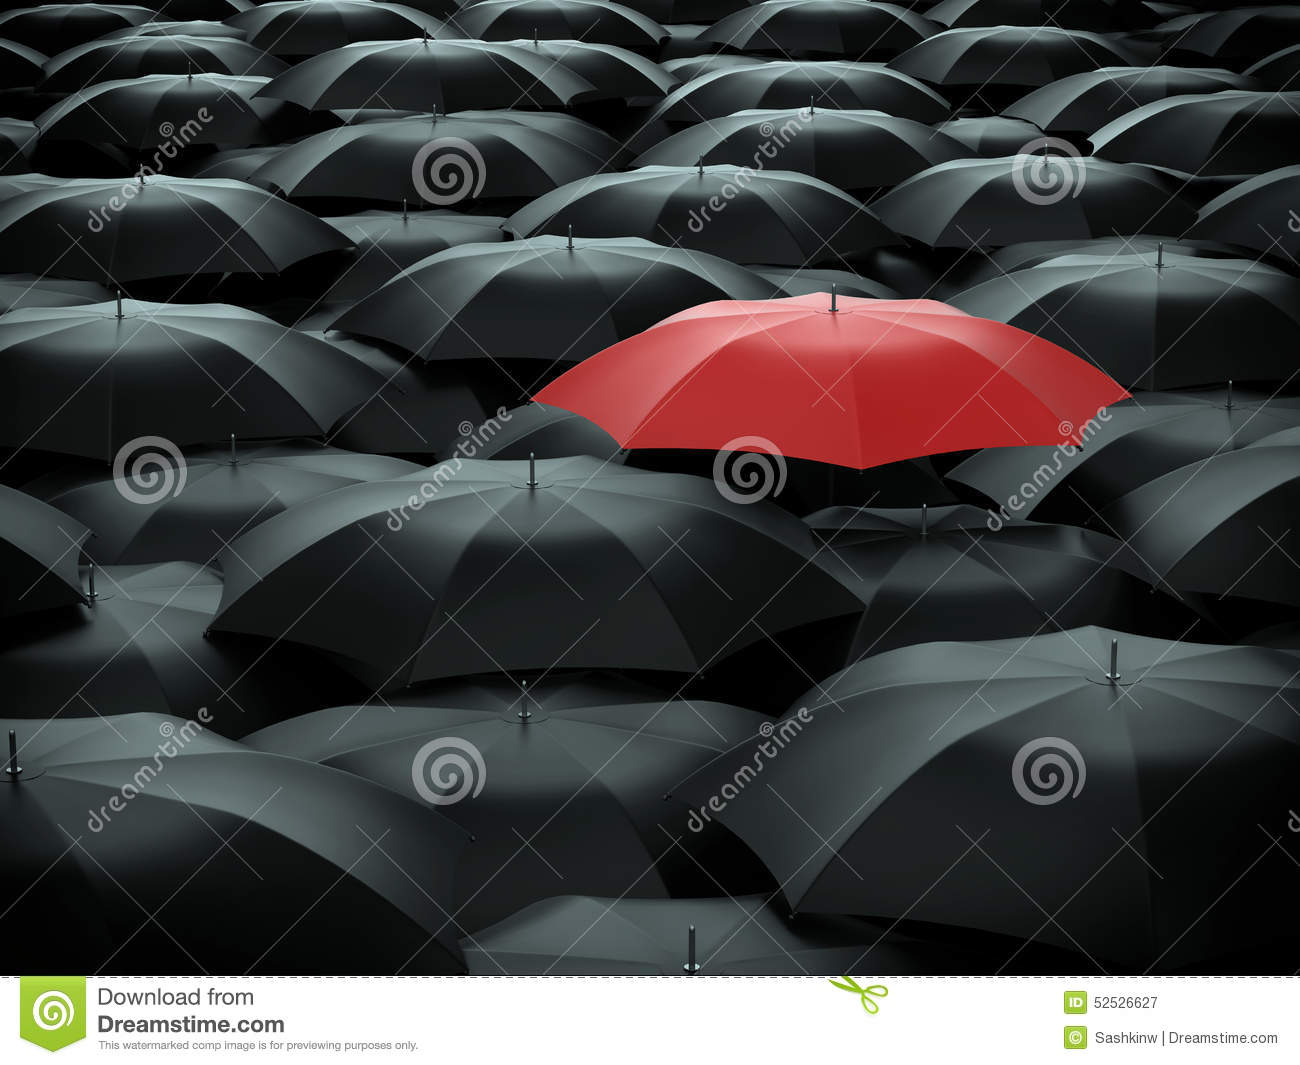 Umbrella over many black umbrellas